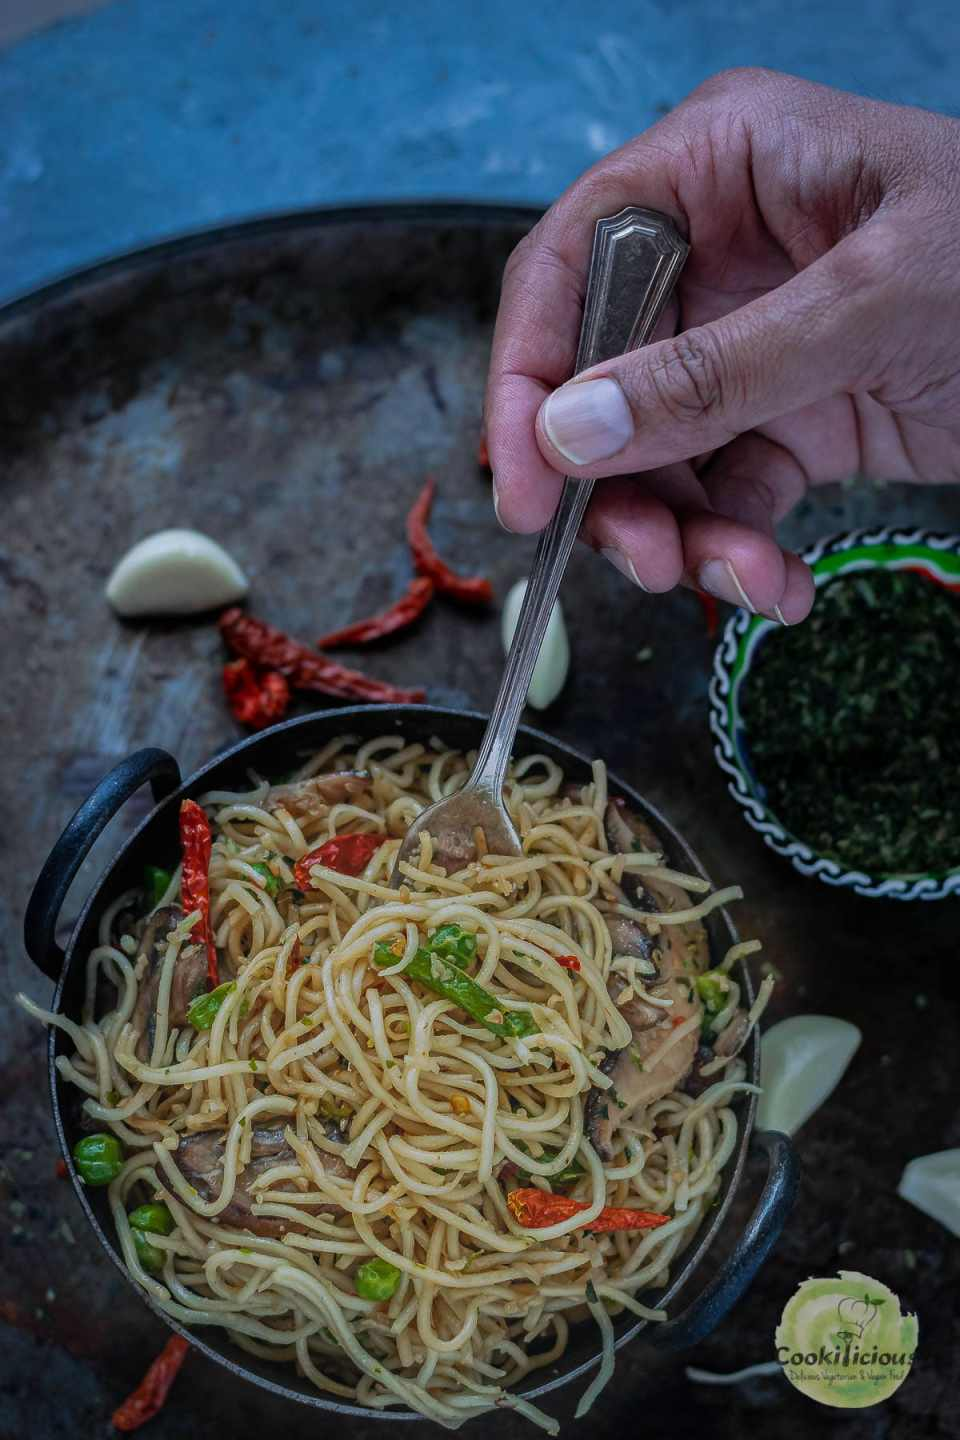 close up shot of a hand digging a fork into a bowl of Chilly Garlic Noodles